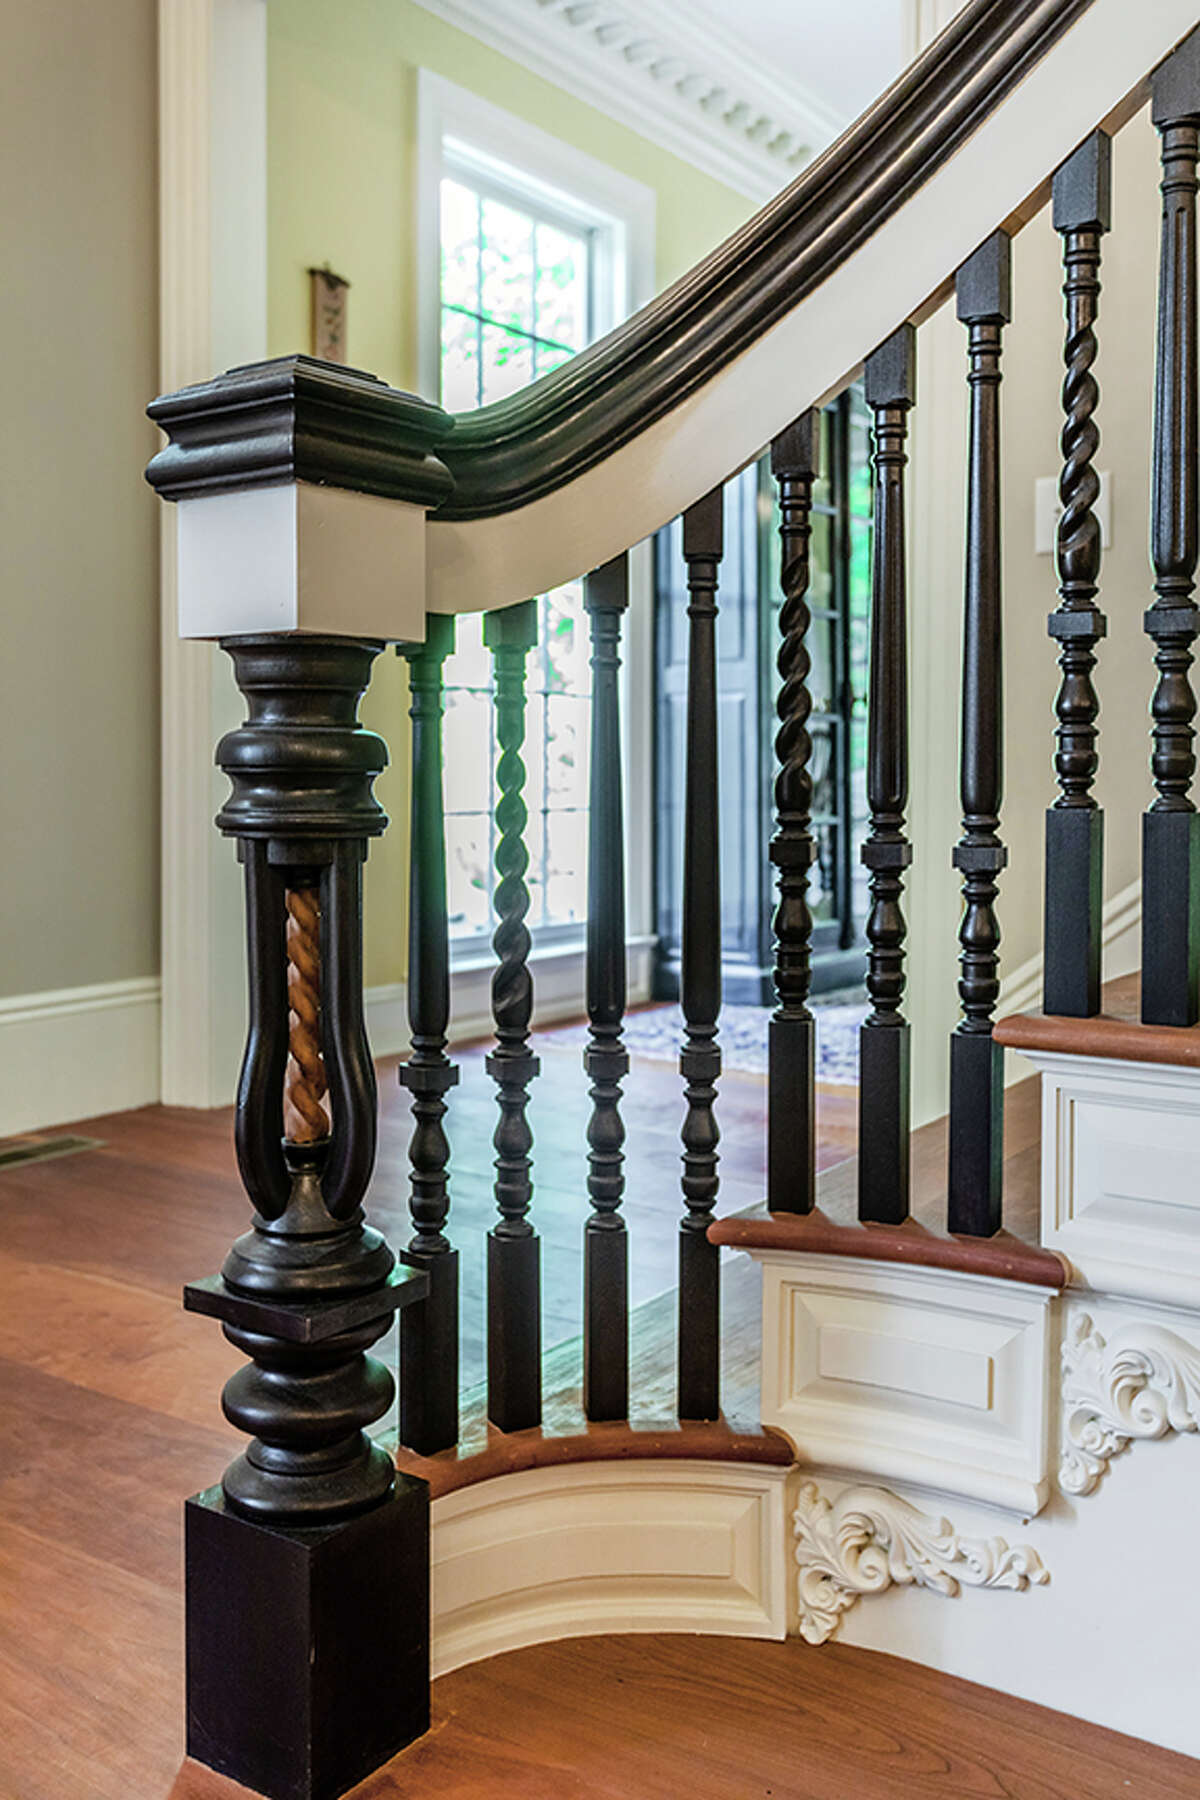 The stairs in the home on 92 Judds Bridge Road in Roxbury, Conn. is handmade and borrows from the design of sea captains' mansions of the Piscataqua River region of New Hampshire and Maine, according to the listing.